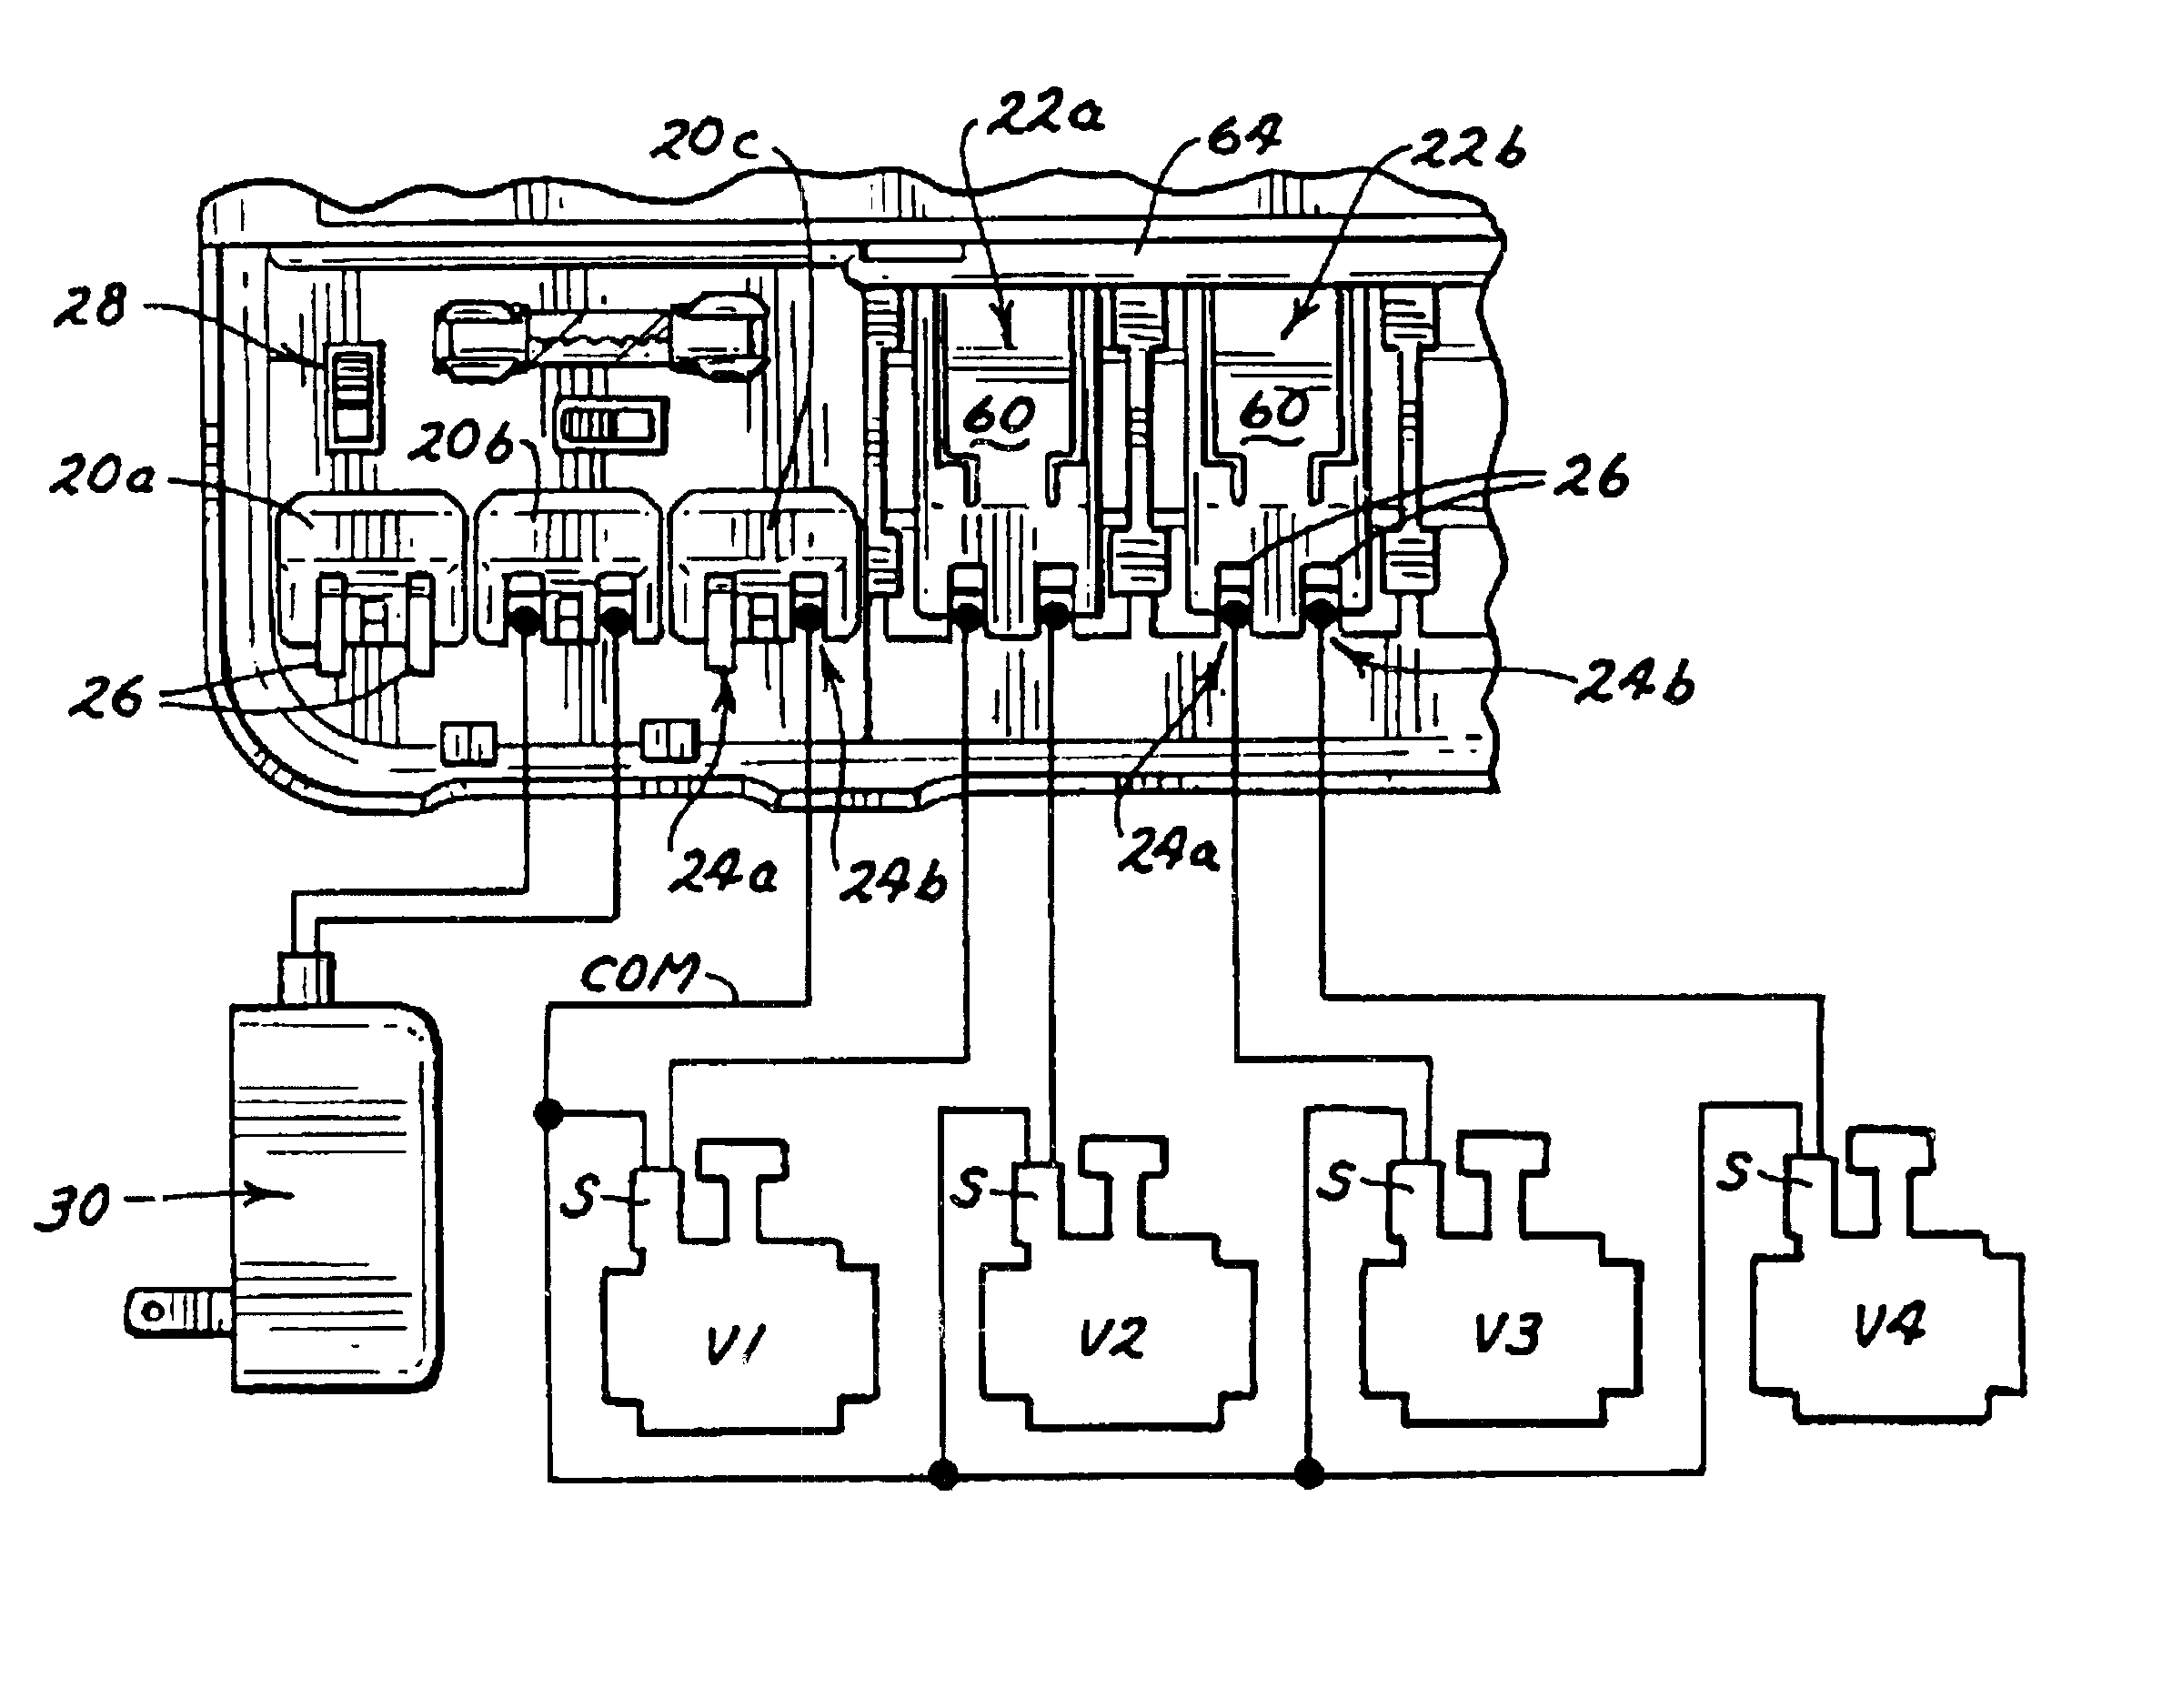 US06459959 20021001 D00000 patent us6459959 irrigation controller with removable station wiring diagram toro sprinkler control at crackthecode.co